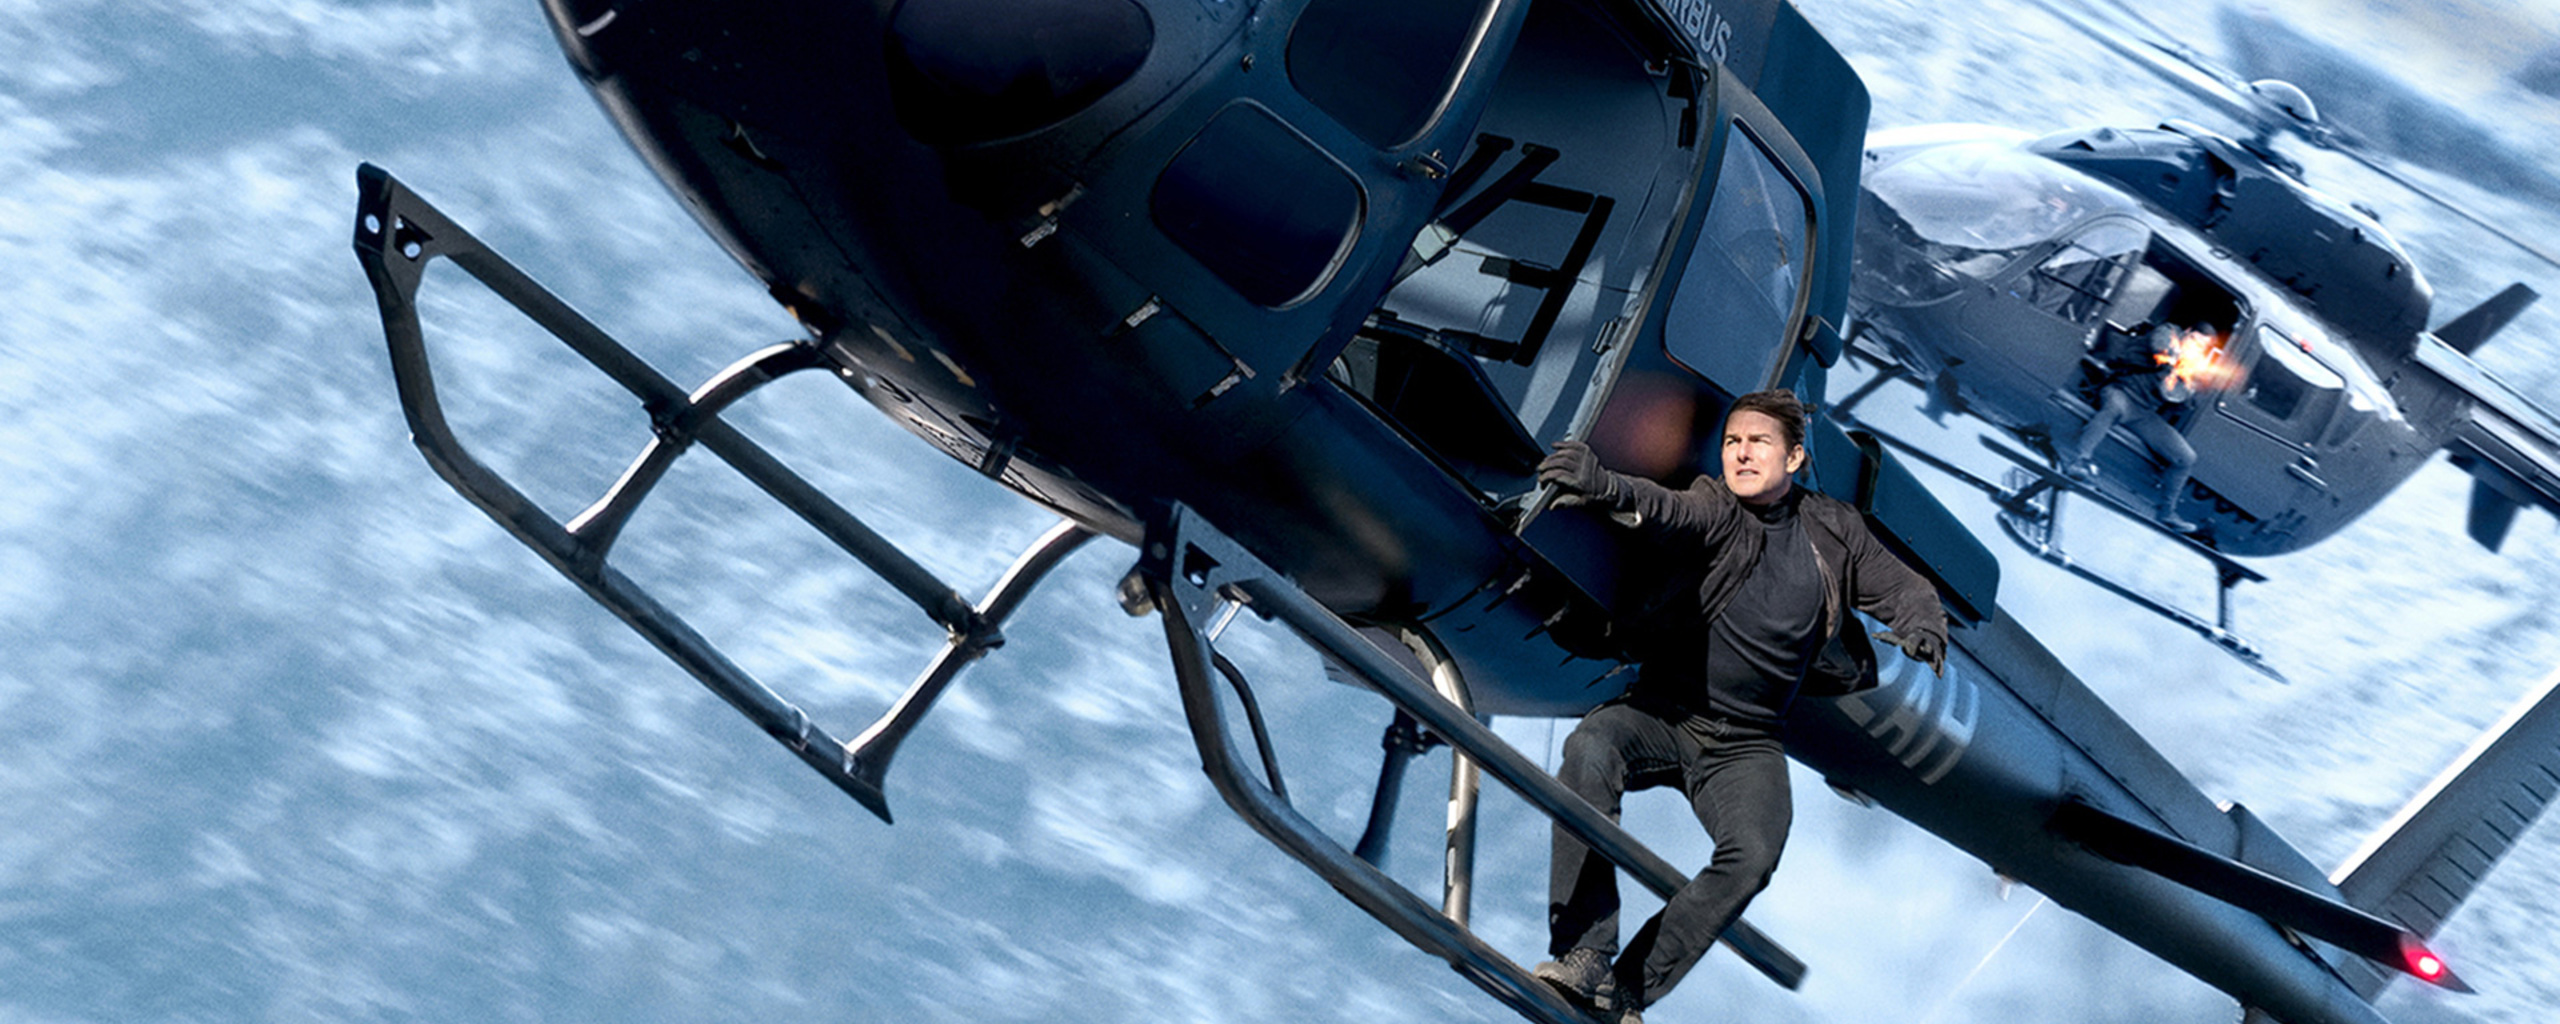 tom-cruise-mission-impossible-fallout-imax-poster-xe.jpg